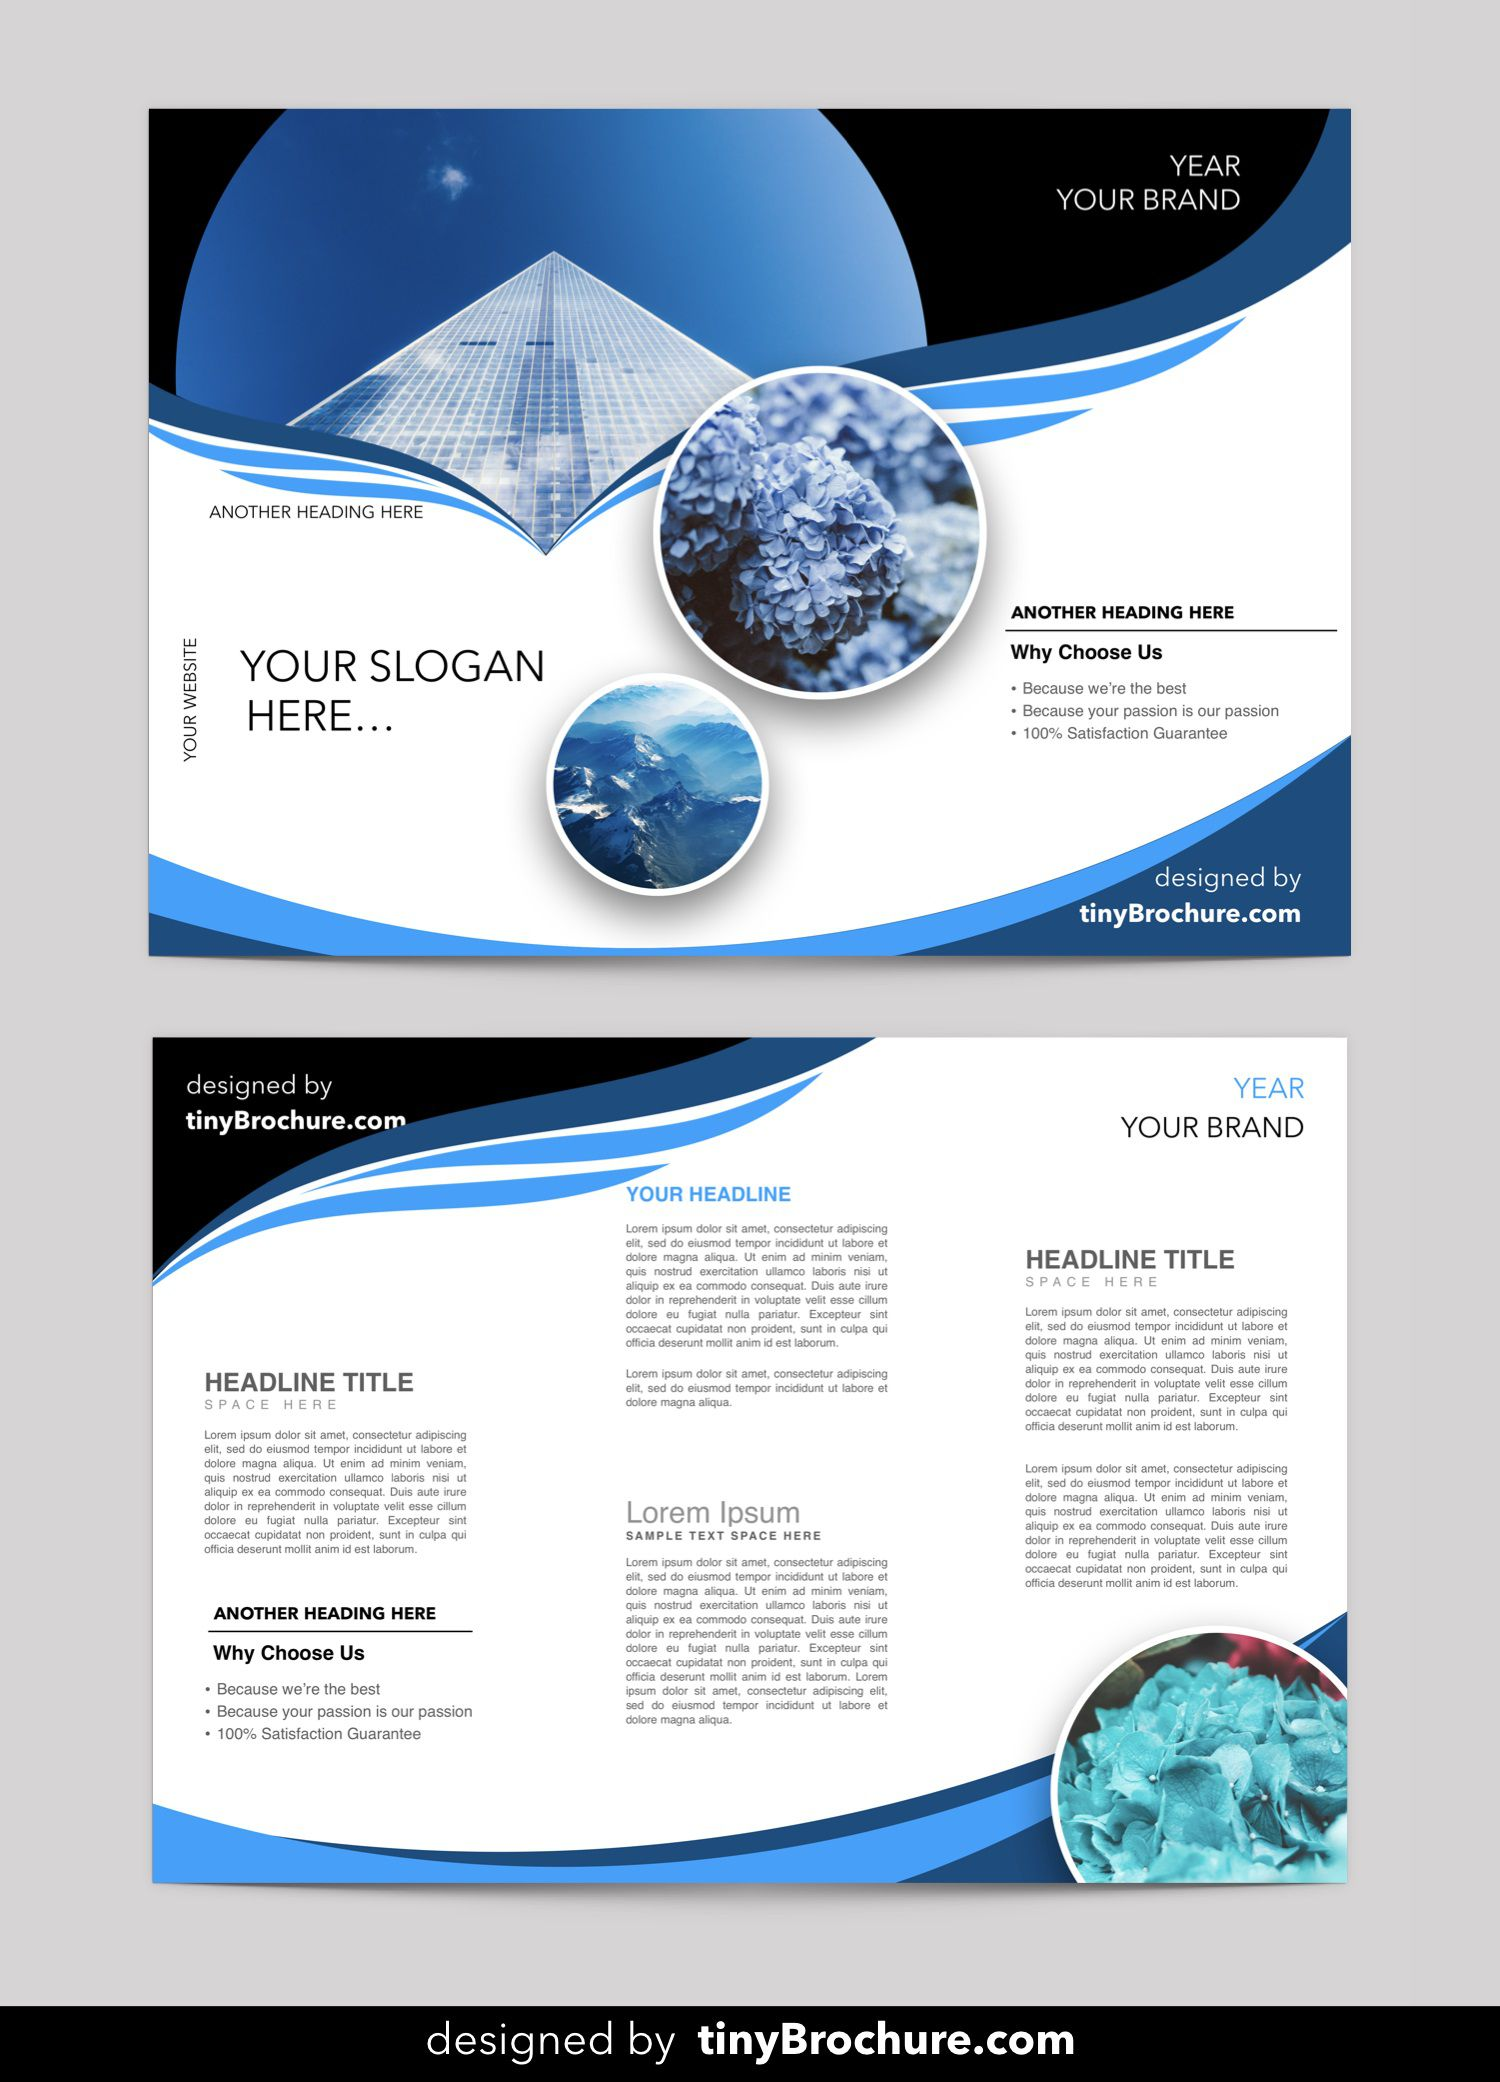 003 Phenomenal Busines Flyer Template Free Download Concept  Psd DesignFull